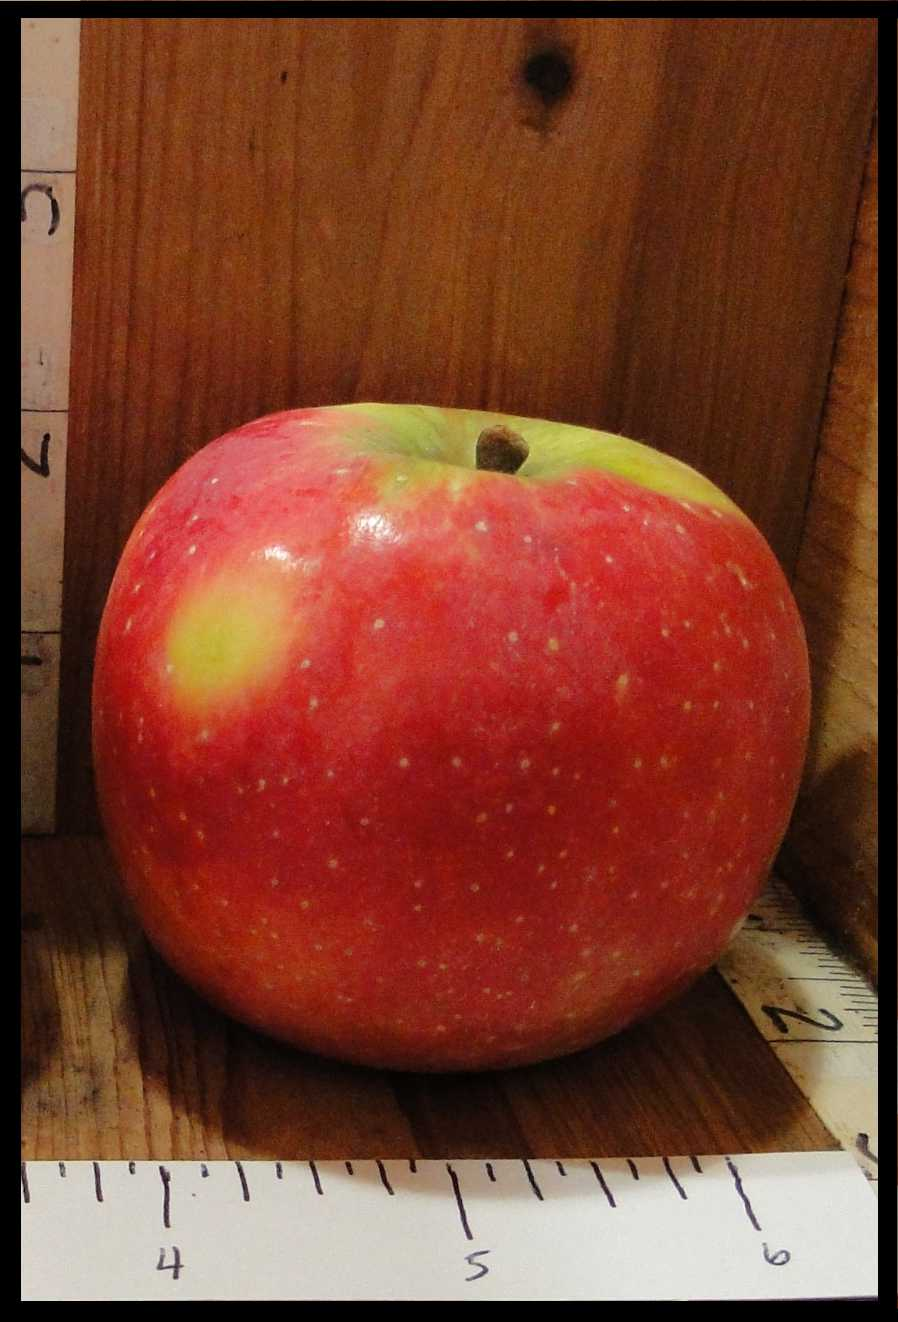 red apple with yellow patch, yellow around stem, and small white spots